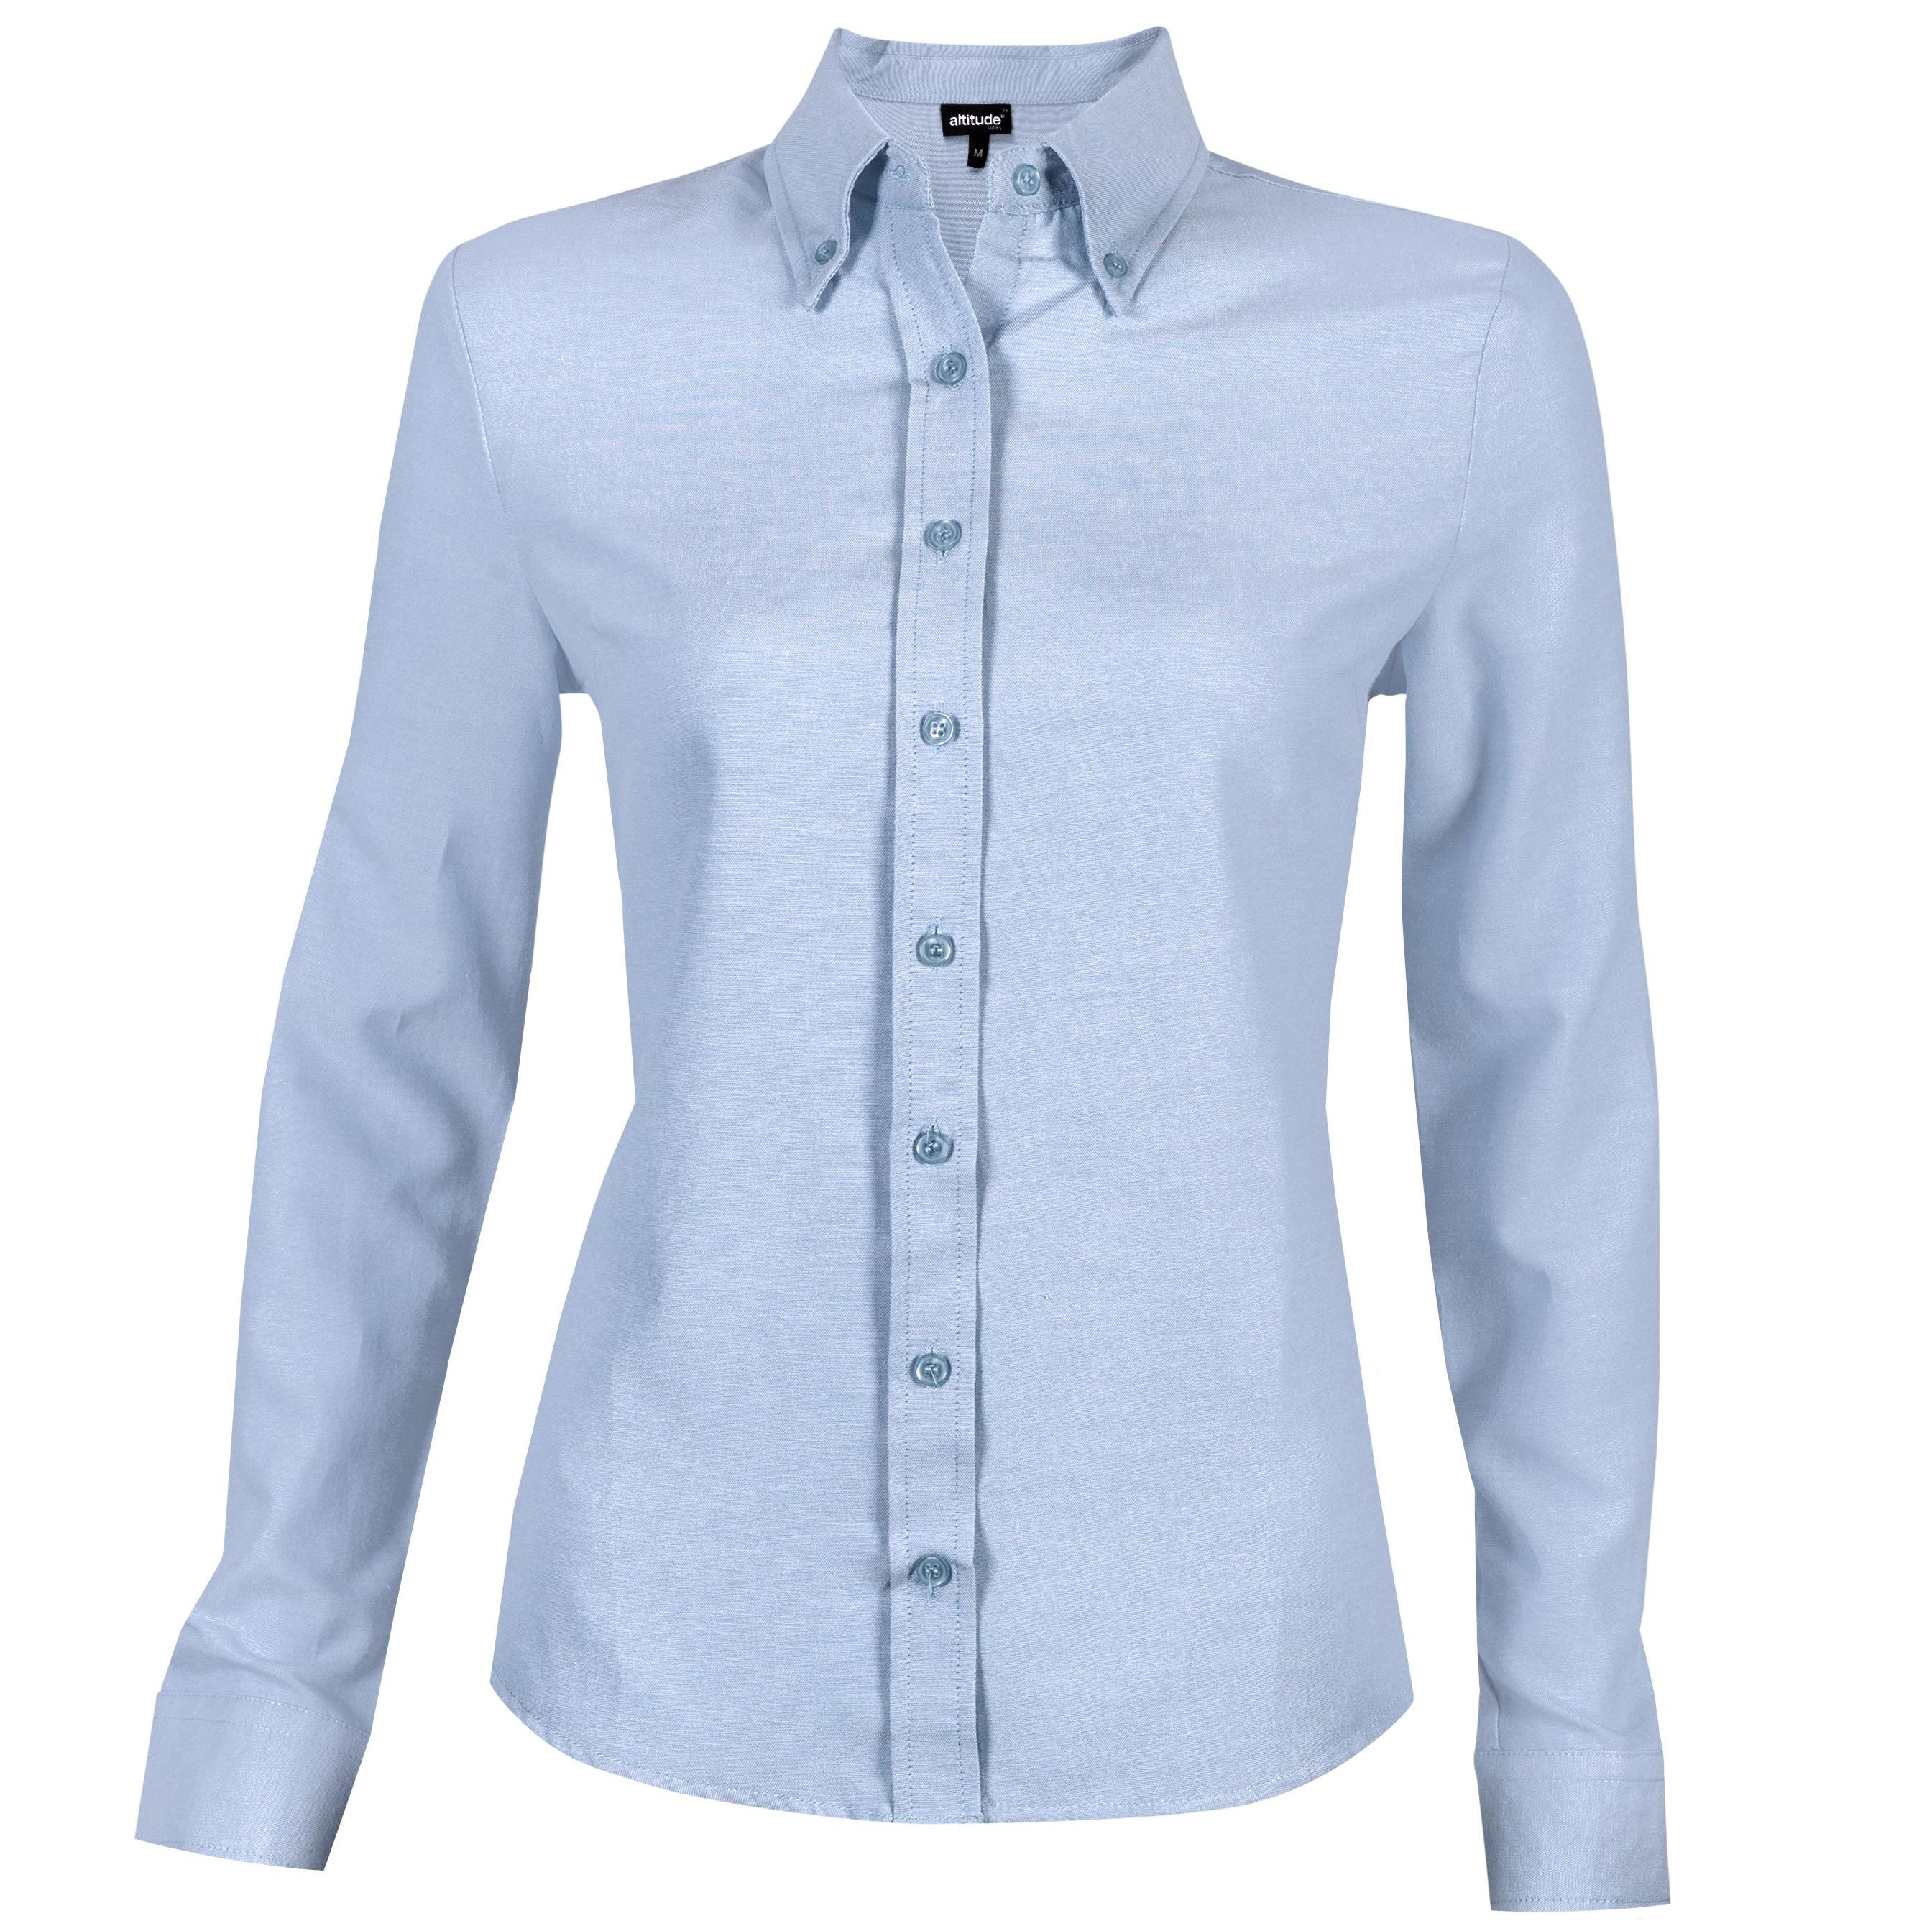 Ladies Long Sleeve Oxford Shirt - Light Blue Only